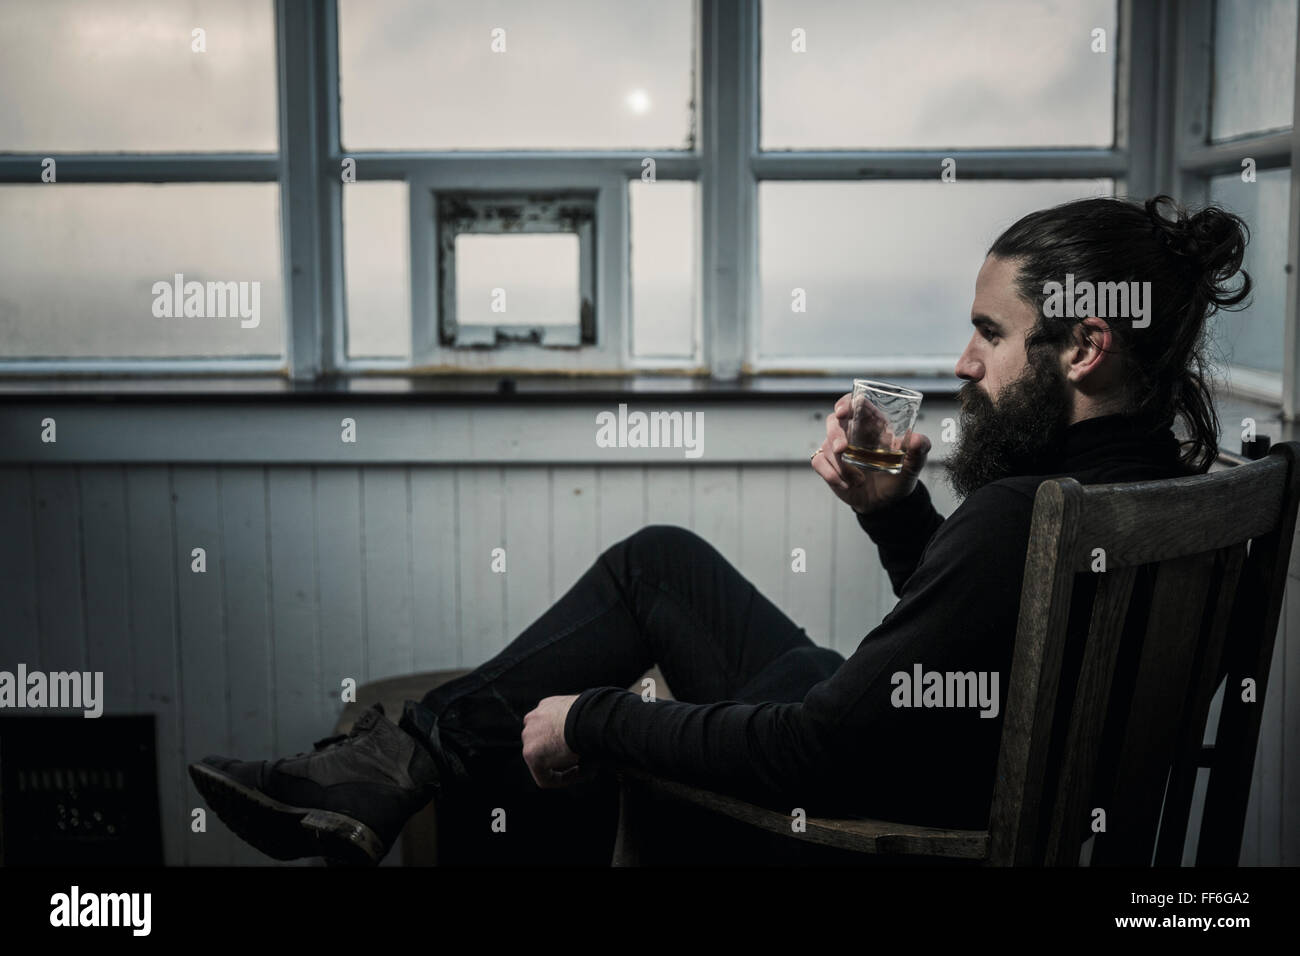 A man sitting looking at the view out of a window, drinking from a glass. - Stock Image